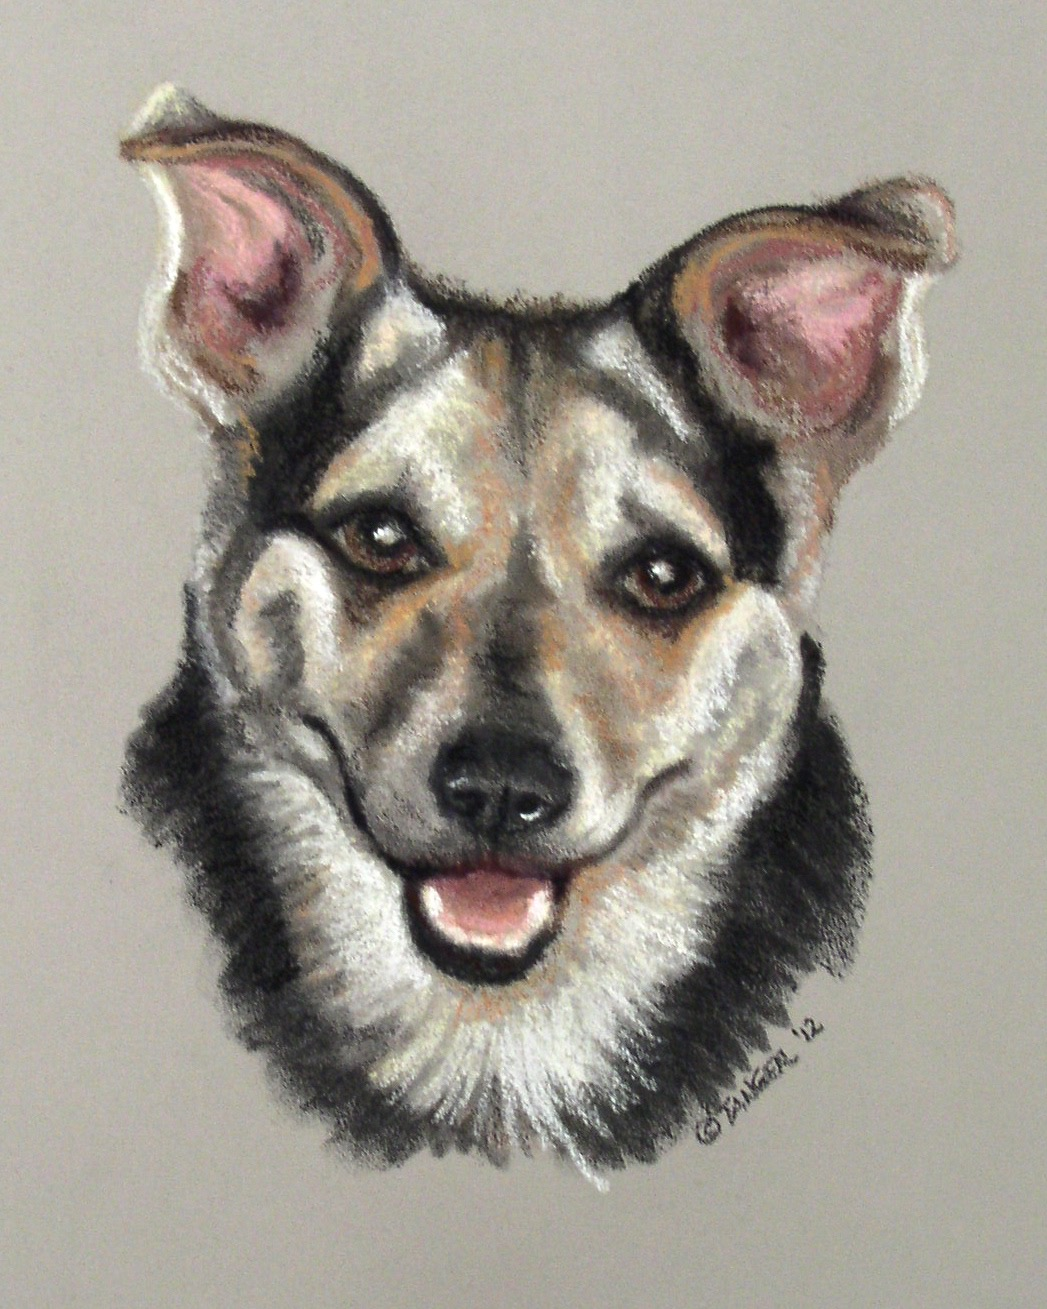 pastel portrait of small dog with ears up